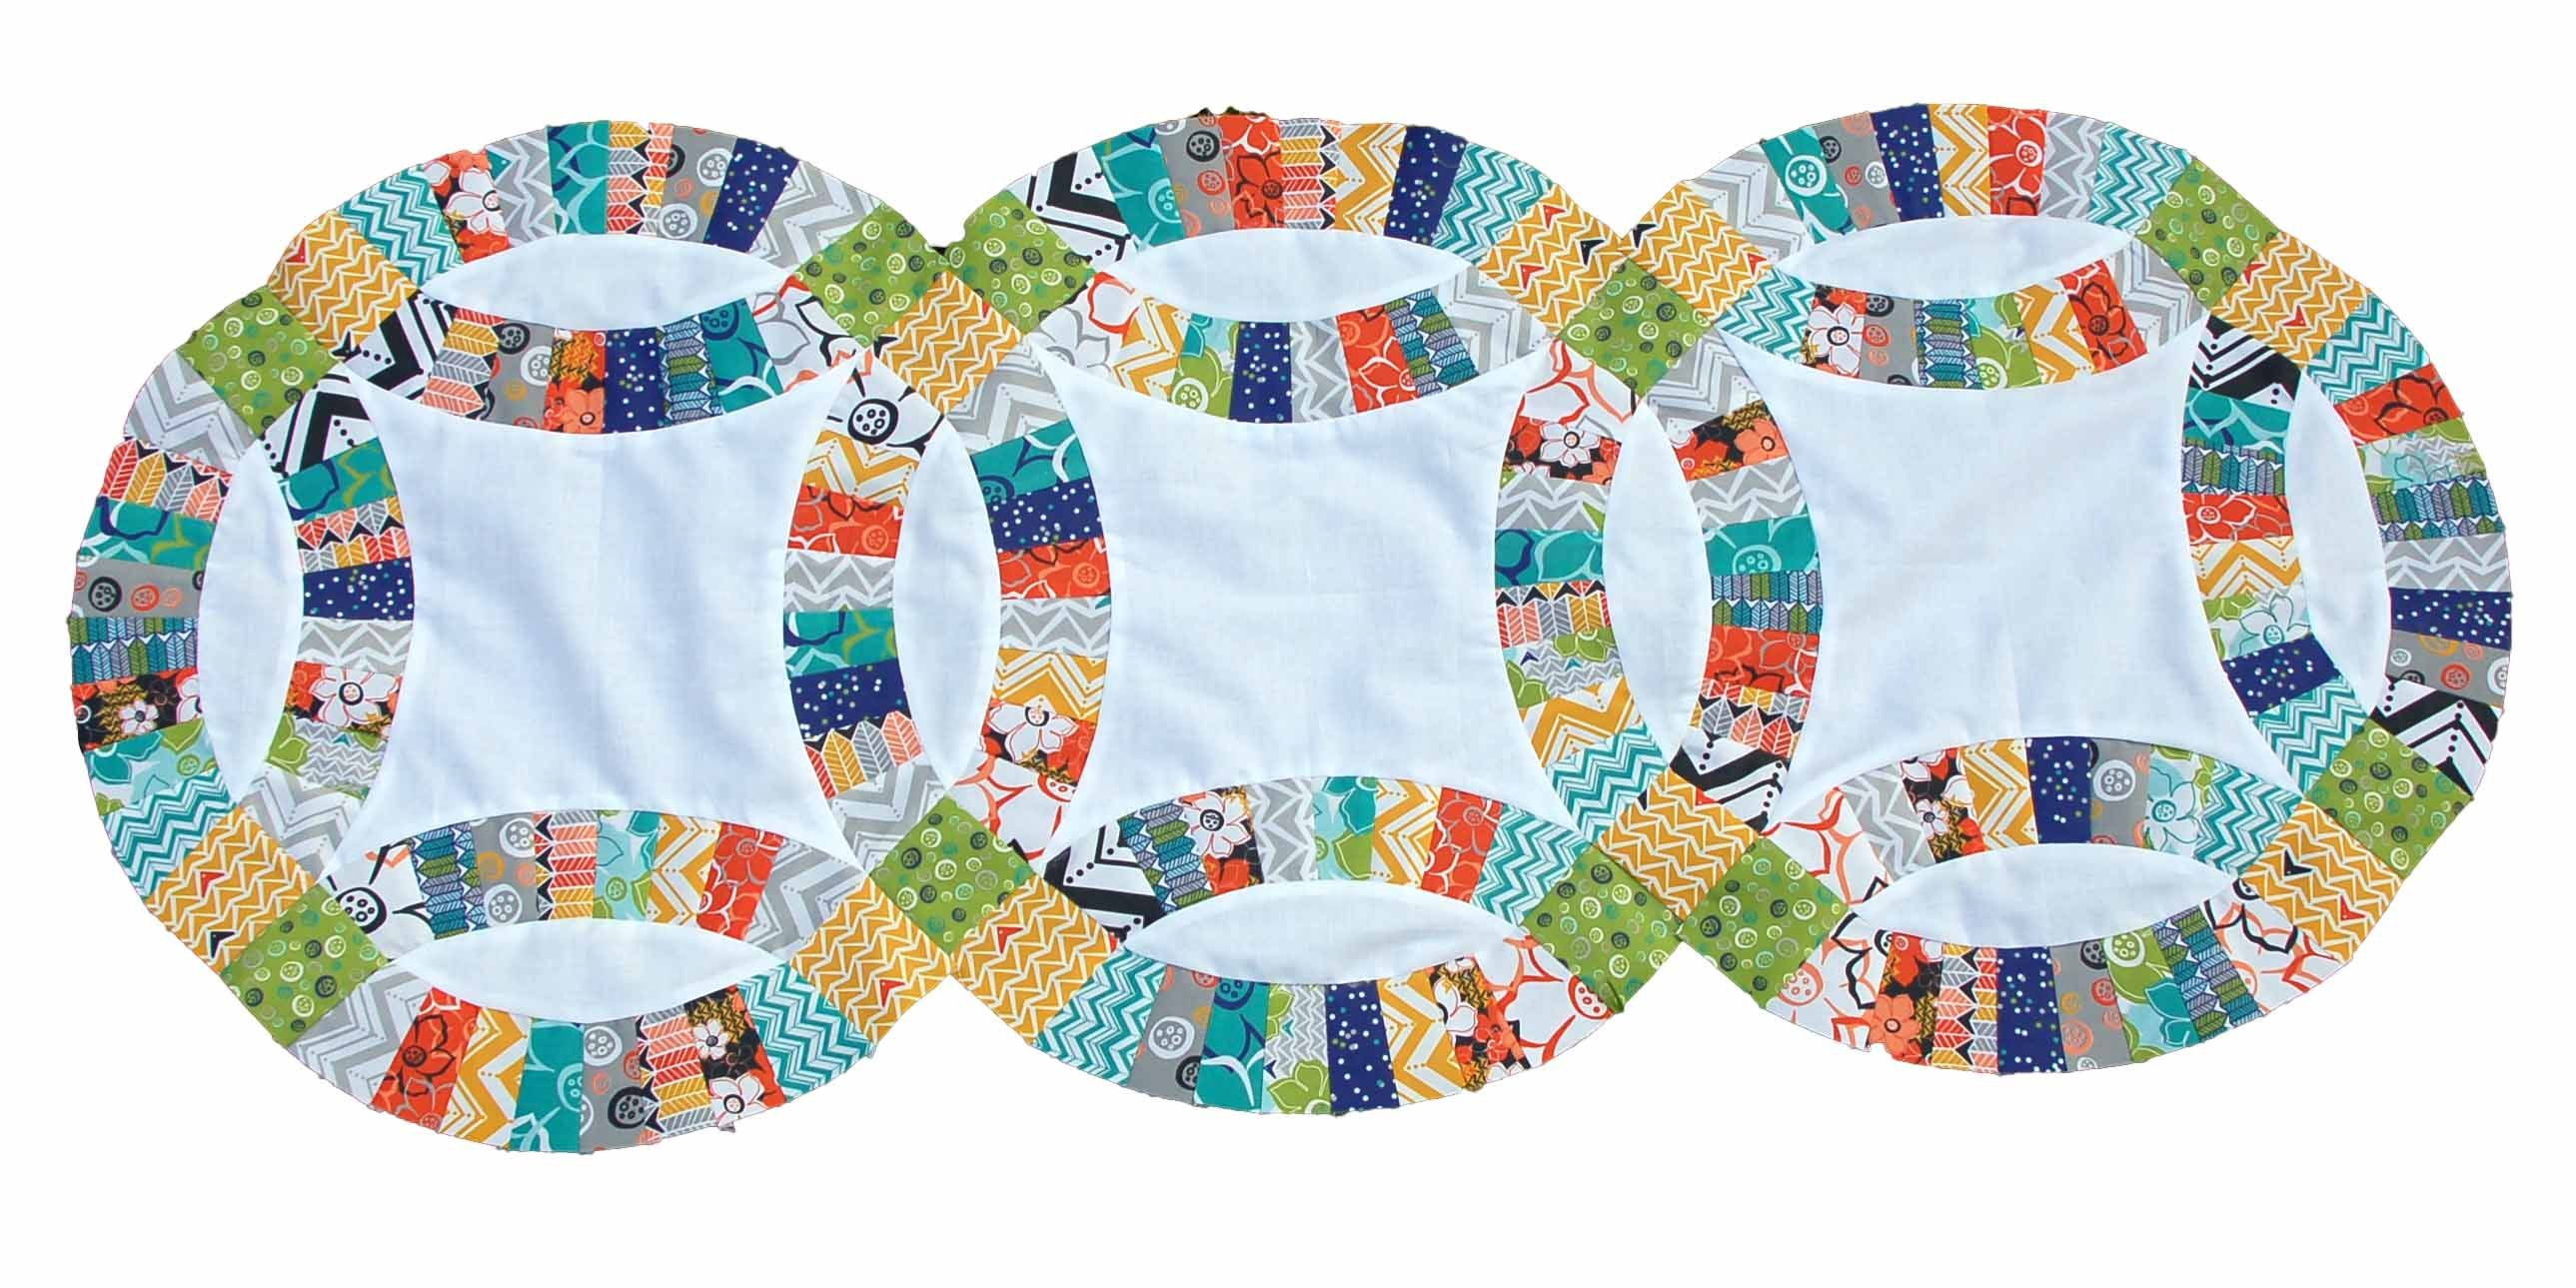 double wedding ring quilt challenge template giveaway - Double Wedding Ring Quilt Pattern